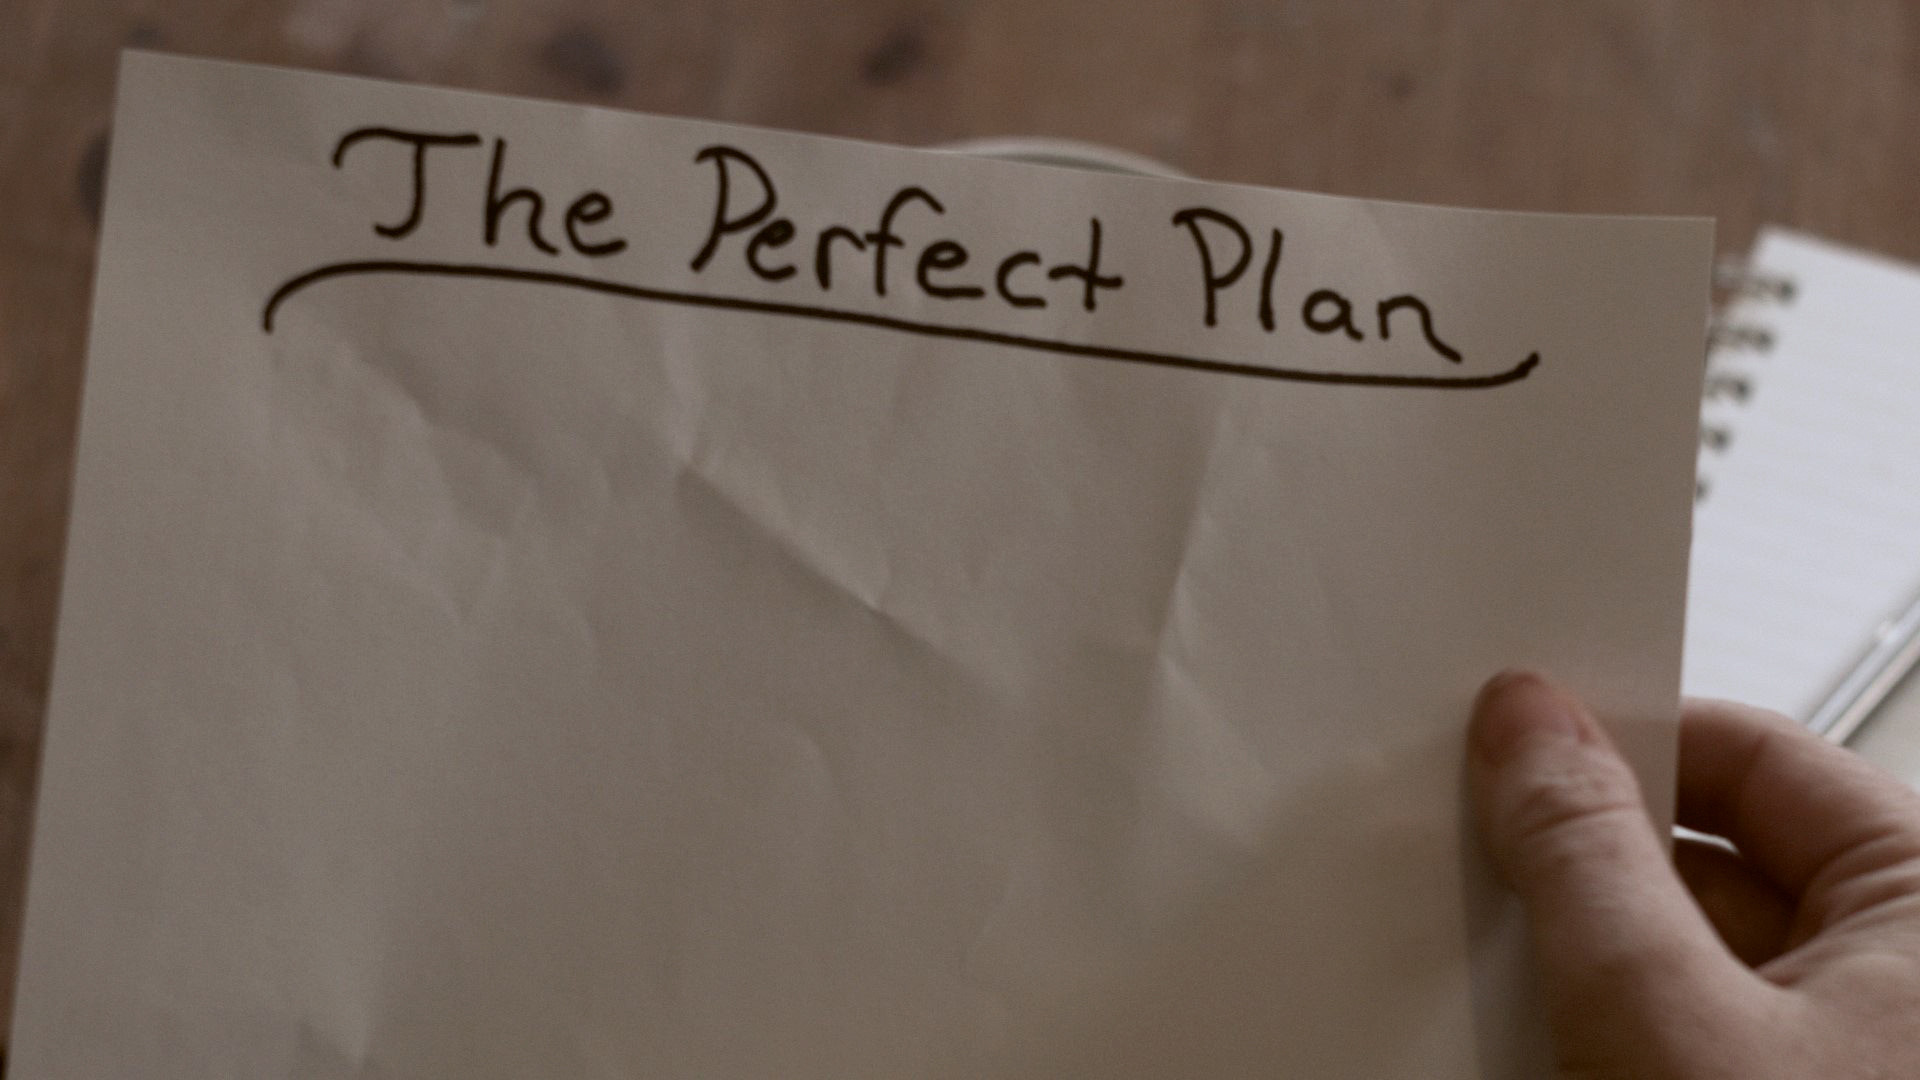 Herselves Perfect Plan